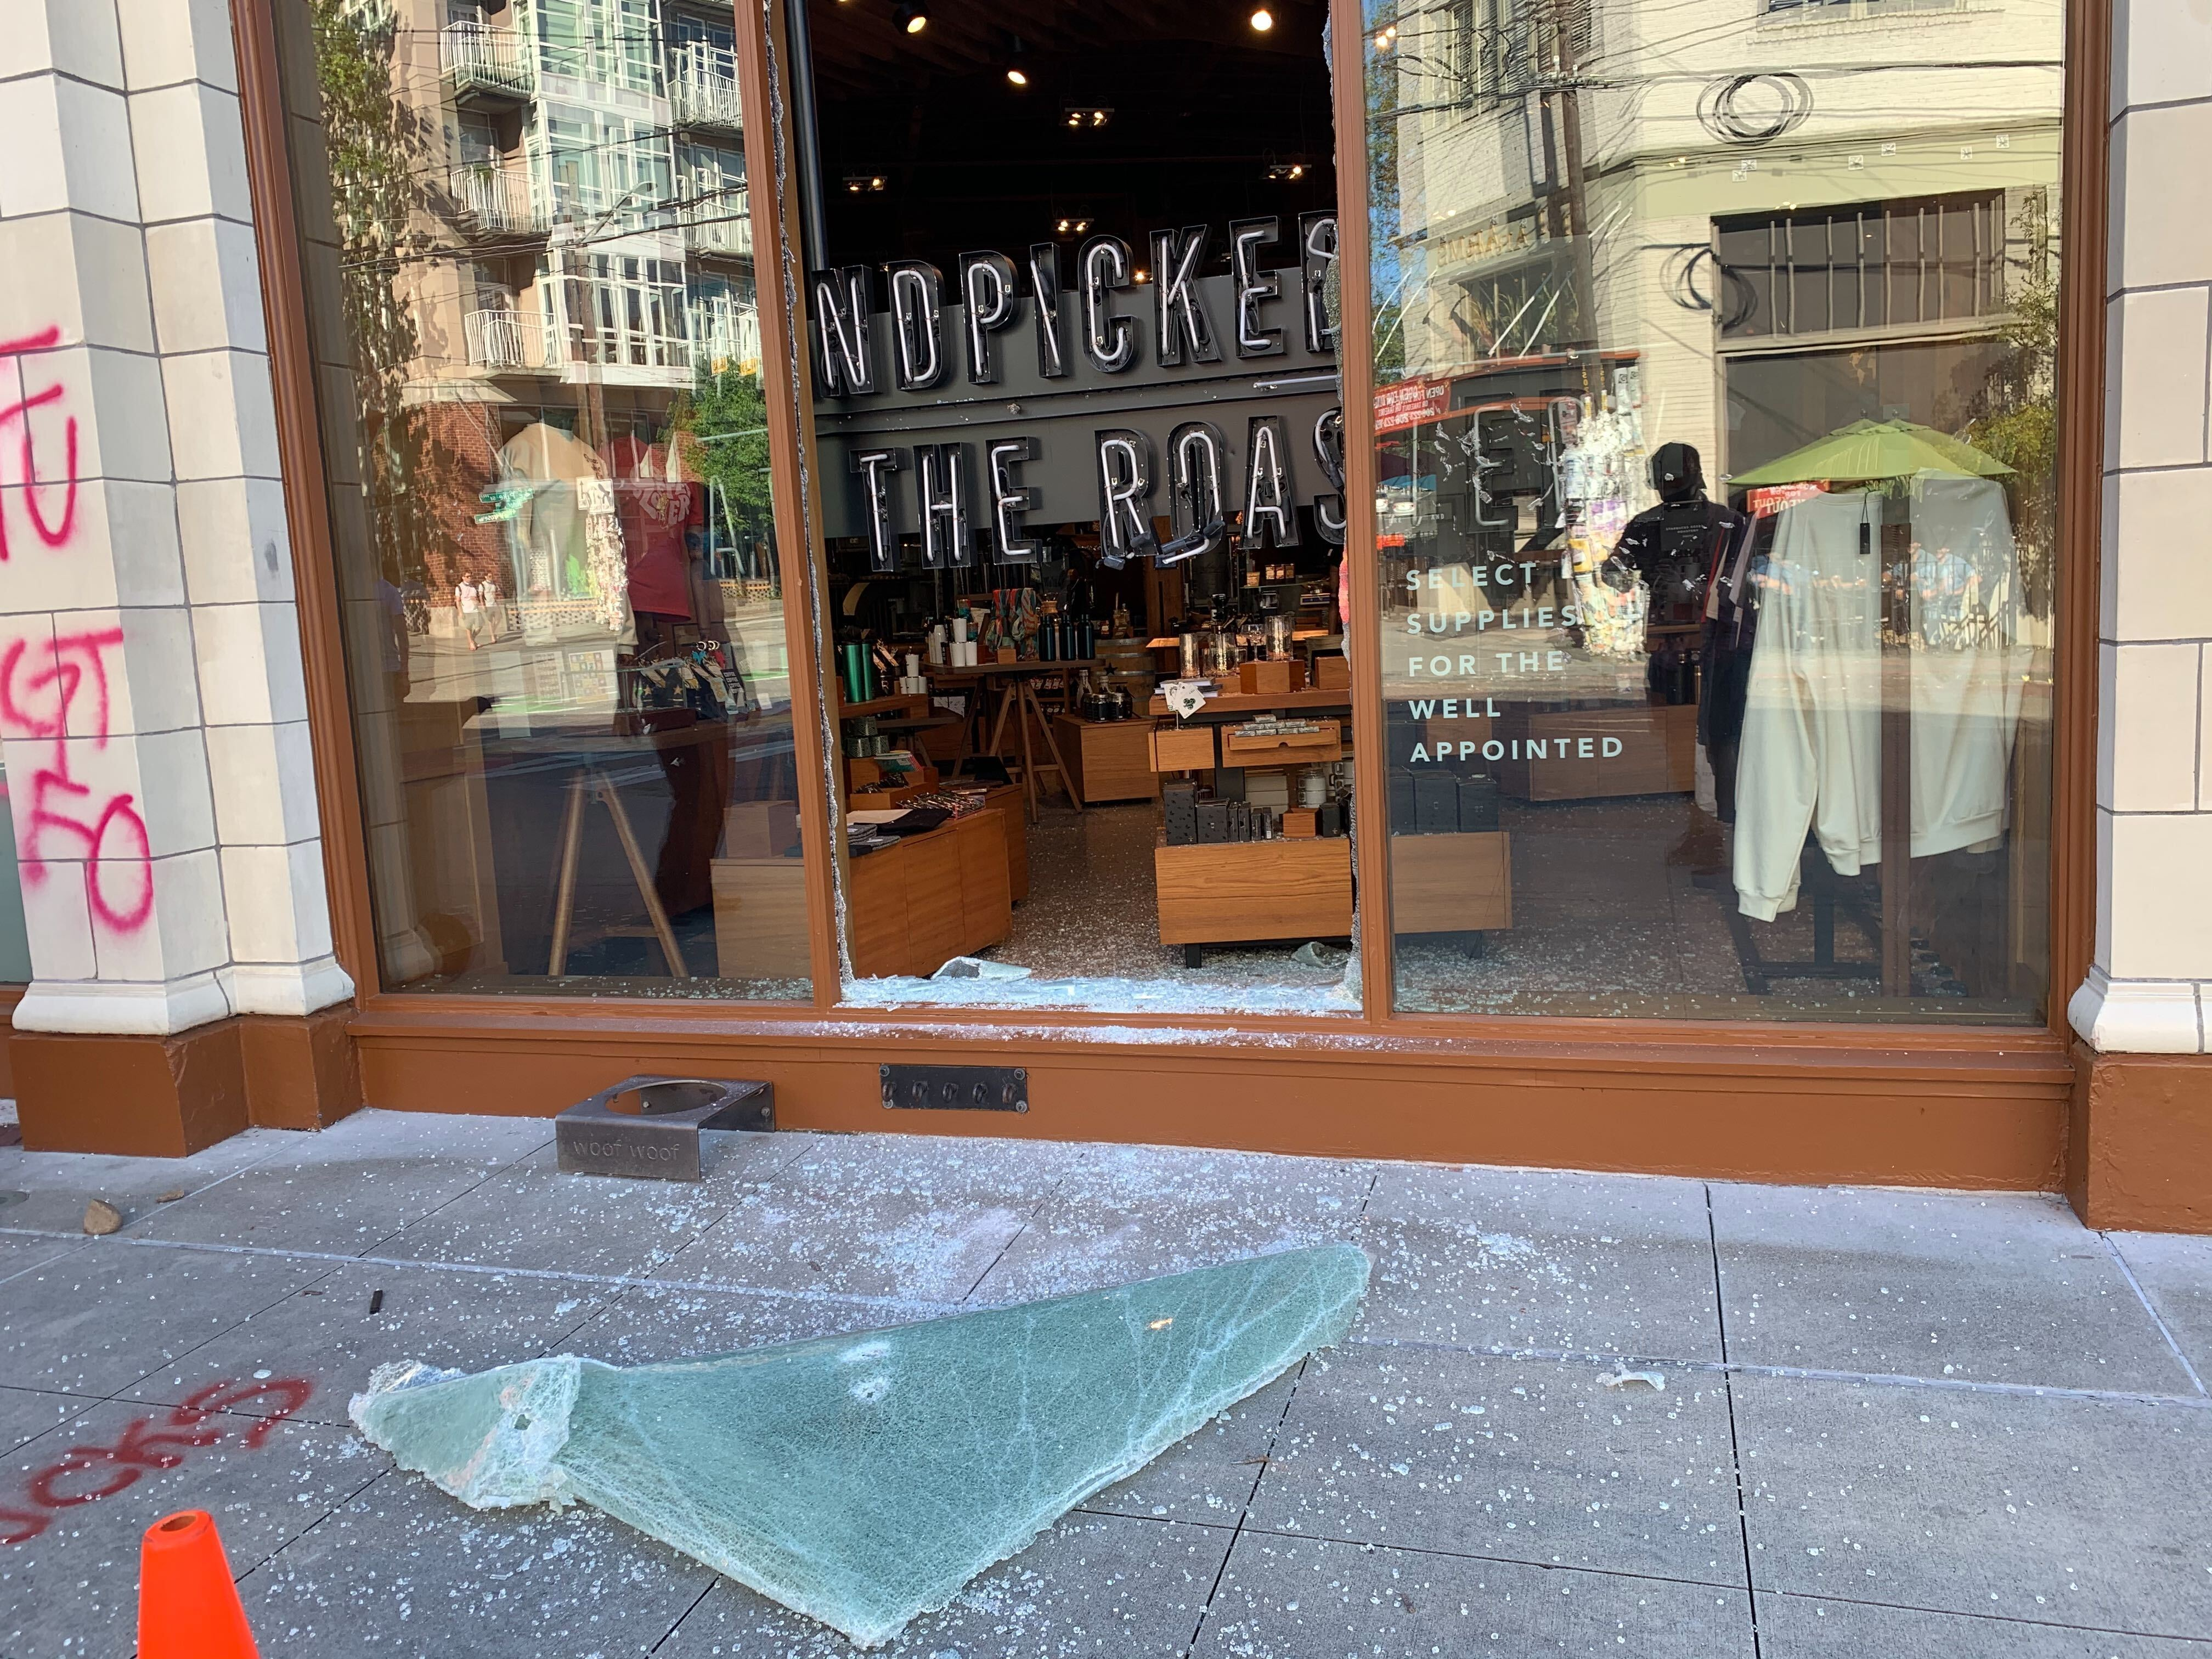 Not Peaceful Protests 12 Officers Injured In Seattle Riots Sunday